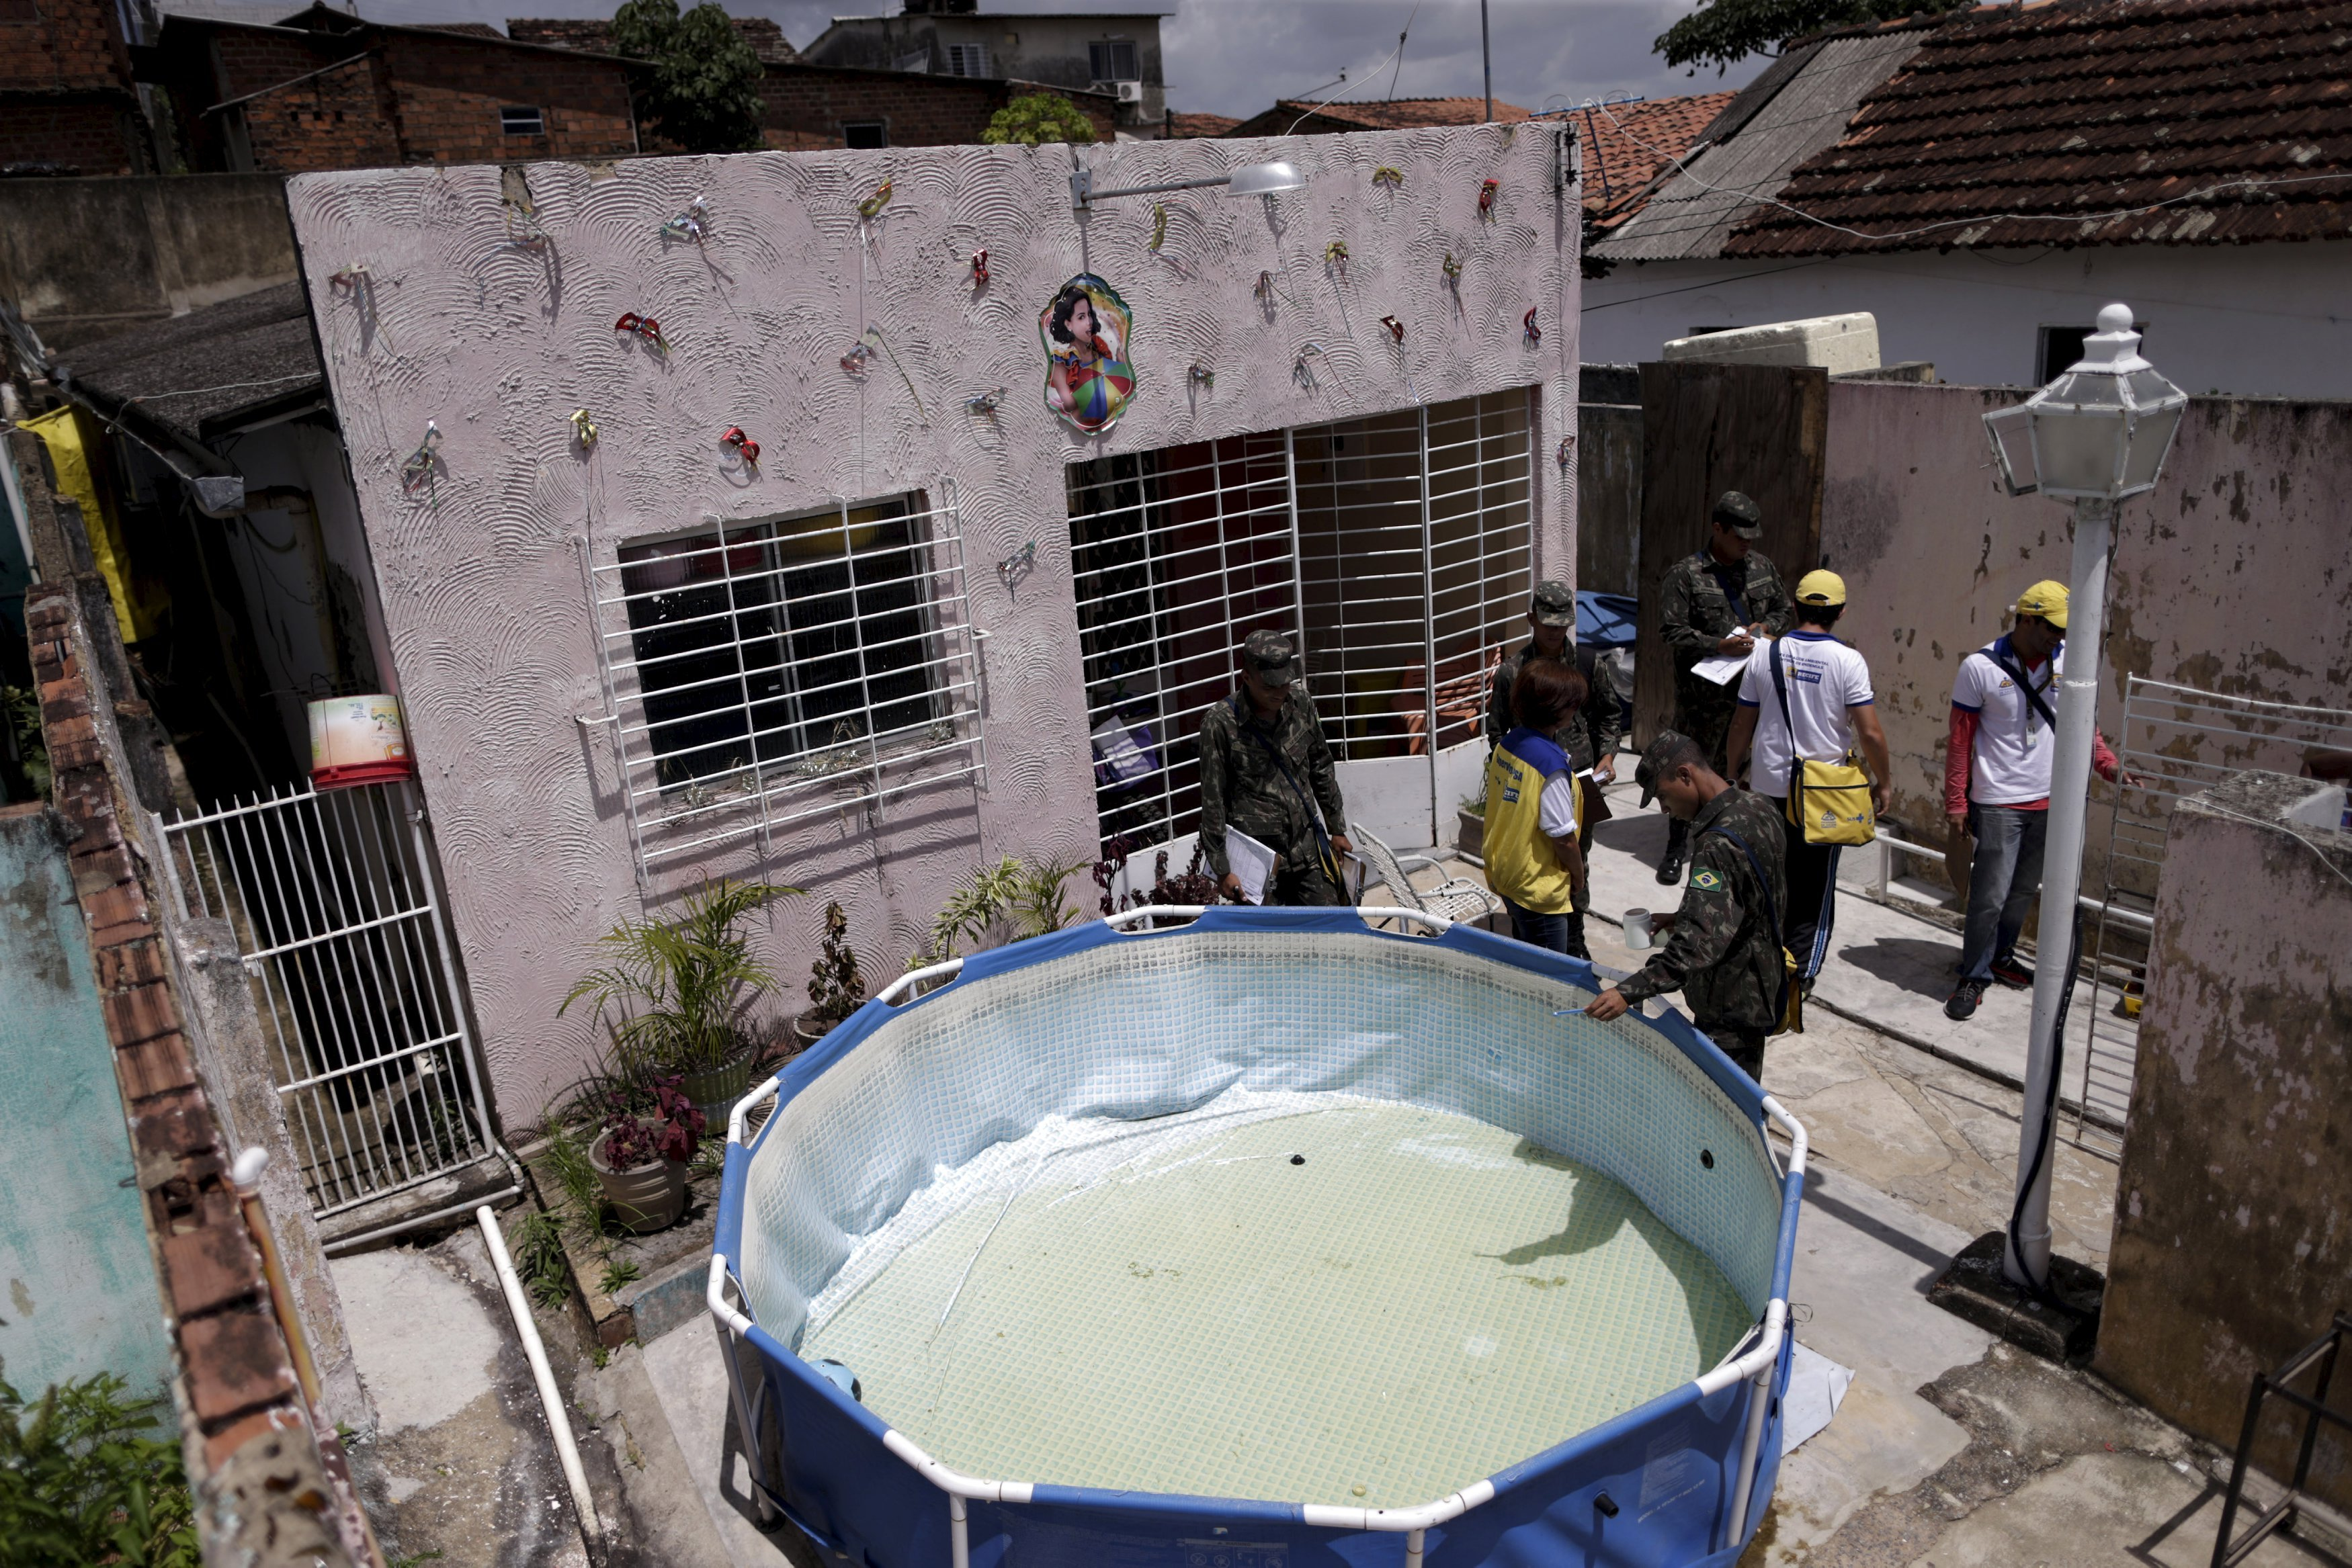 Soldiers inspect a house during an operation against the Aedes aegyti mosquito in Recife, Brazil, Jan. 27, 2016. Health authorities in the state at the center of a Zika outbreak have been overwhelmed by the surge of babies born with microcephaly, a neurological disorder associated with the mosquito-borne virus.